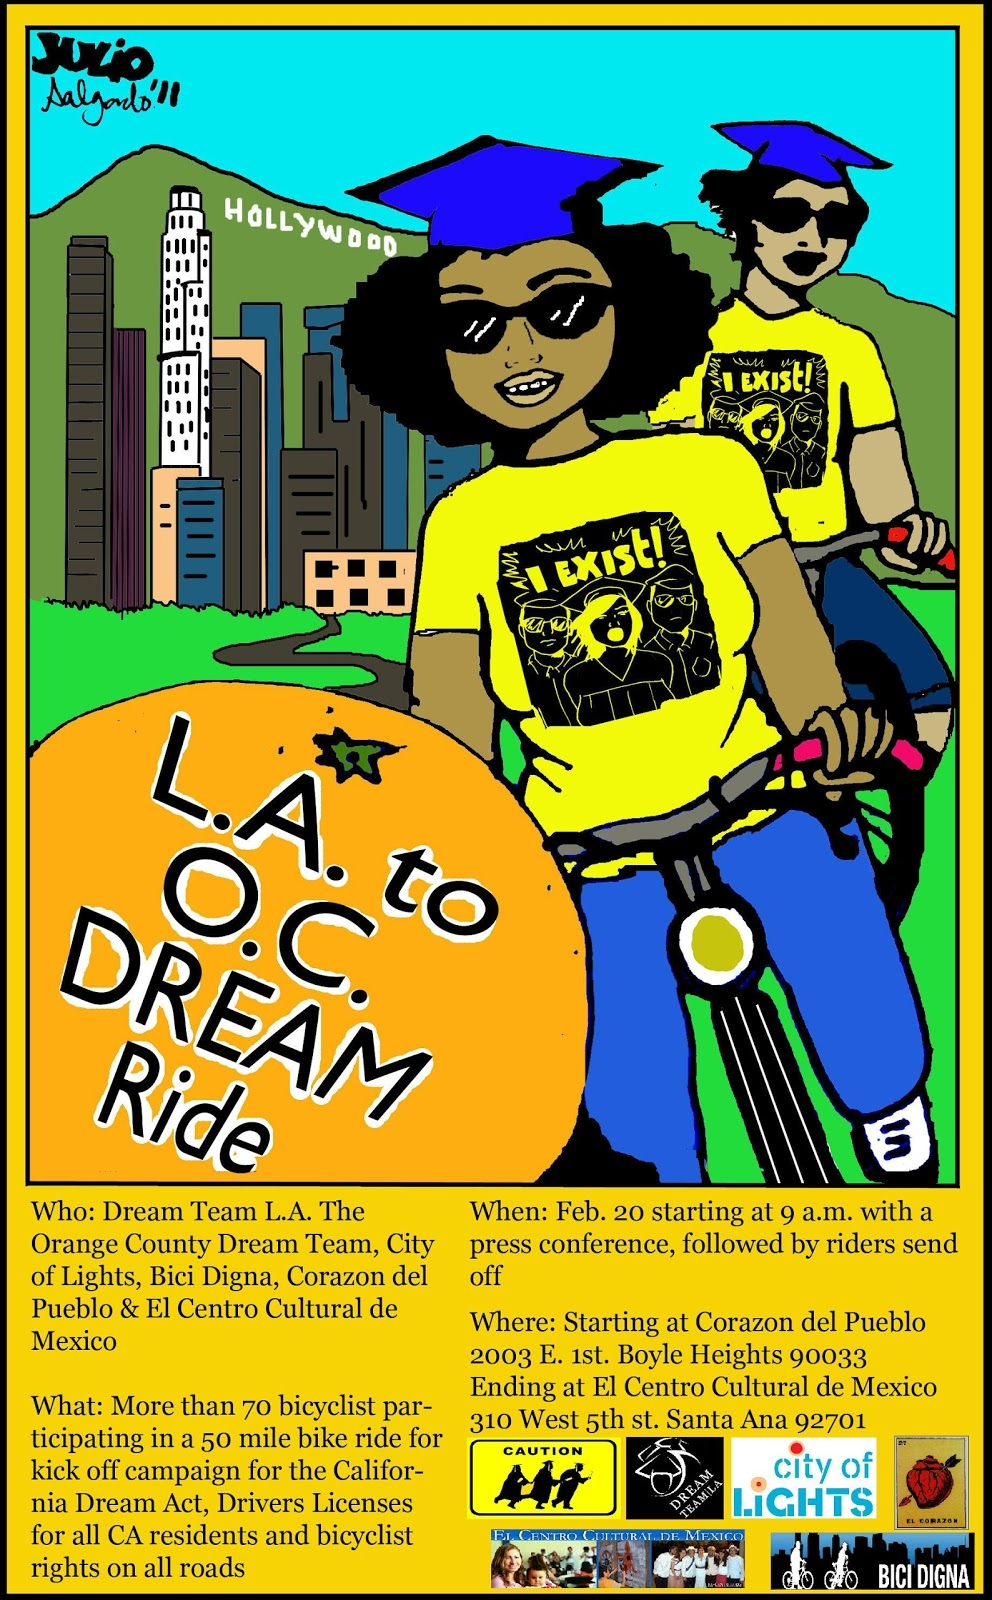 LA to OC Dream Ride flyer 2.20.2011.jpg